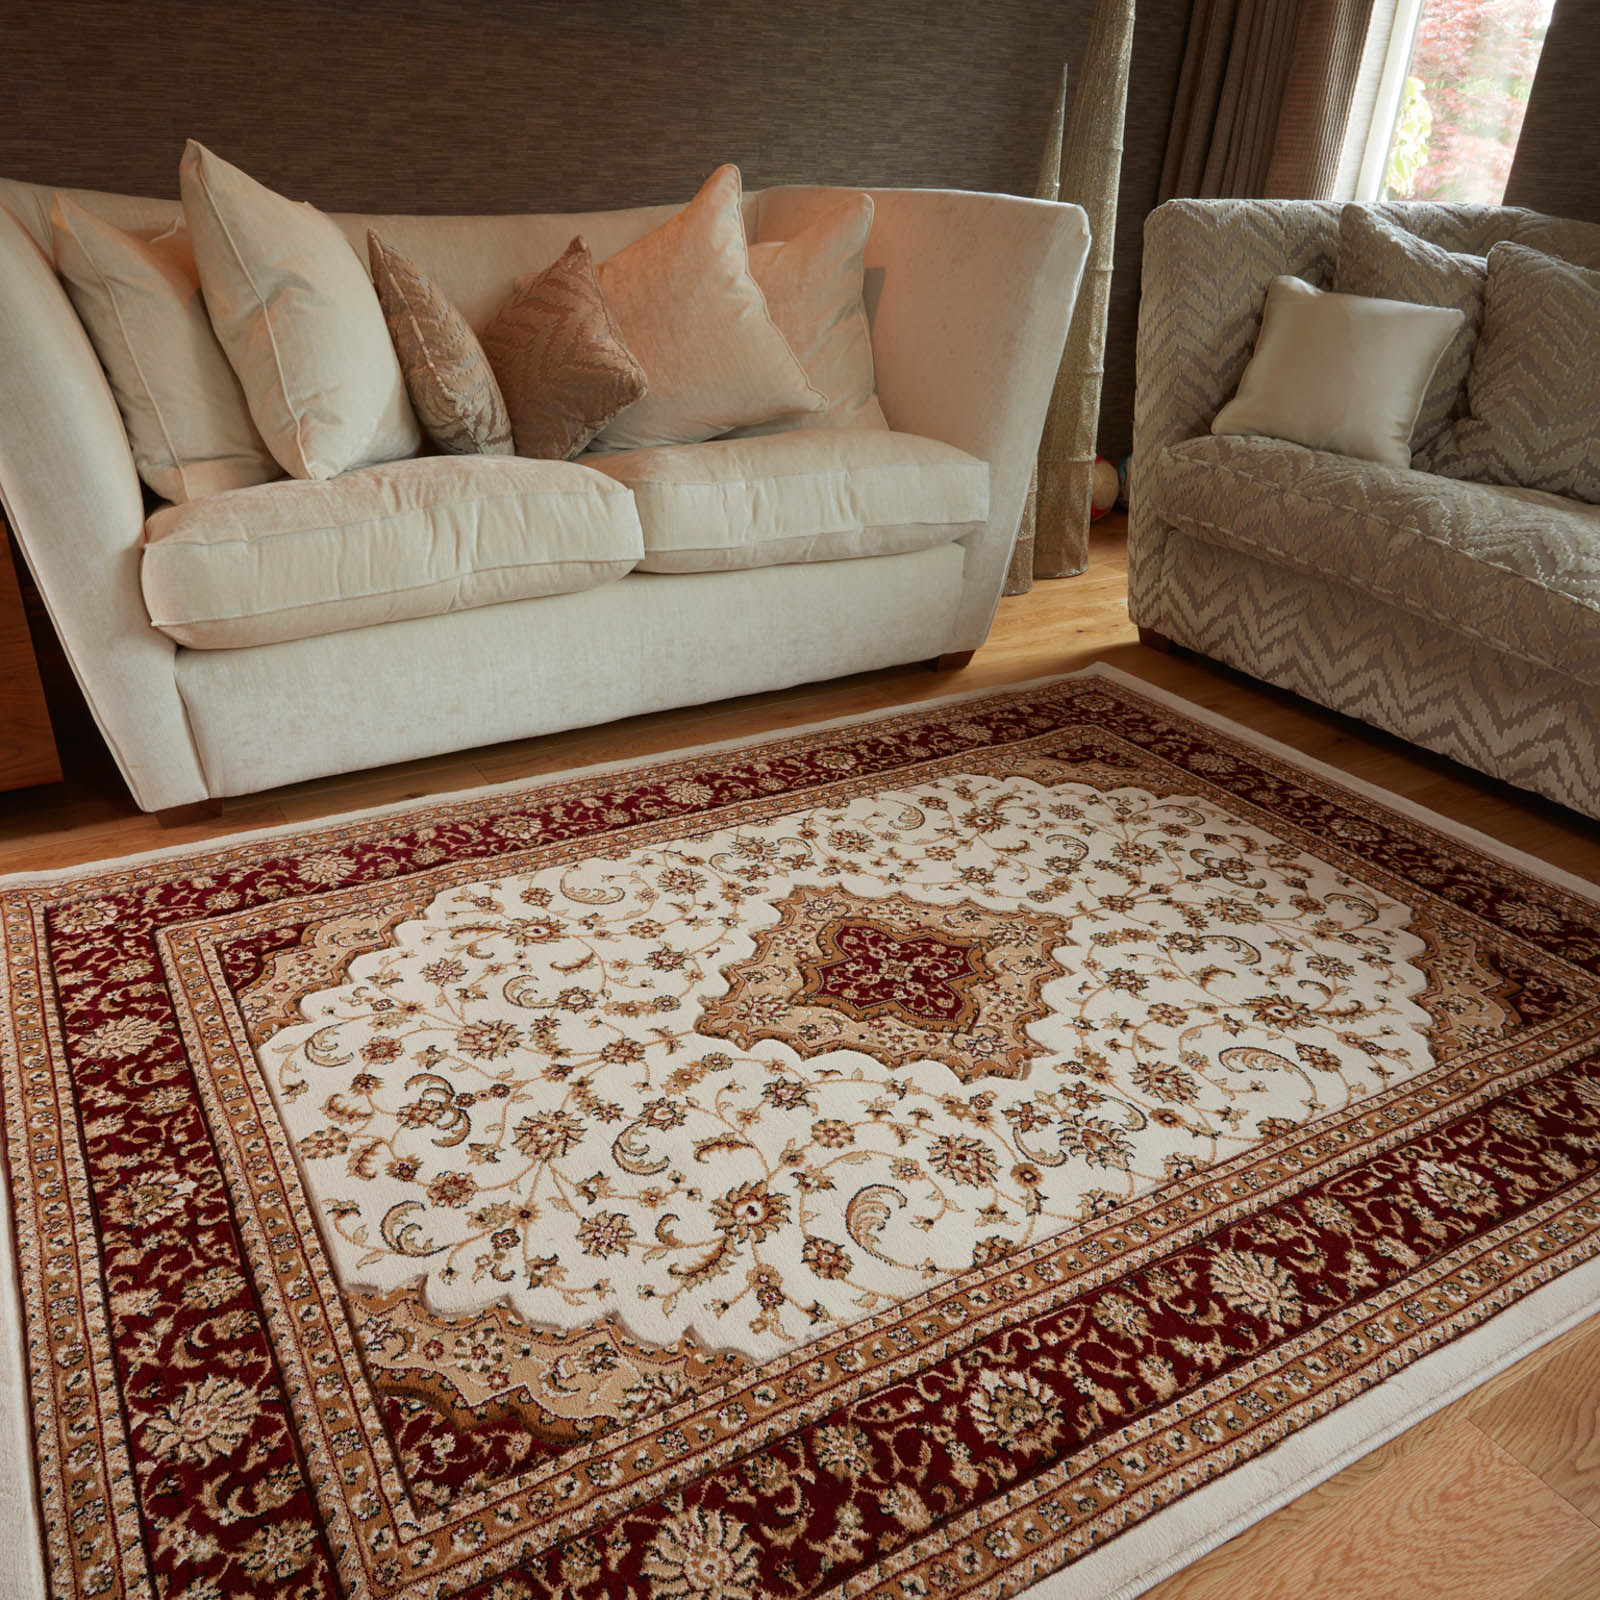 Ottoman Temple Rugs in Cream and Red